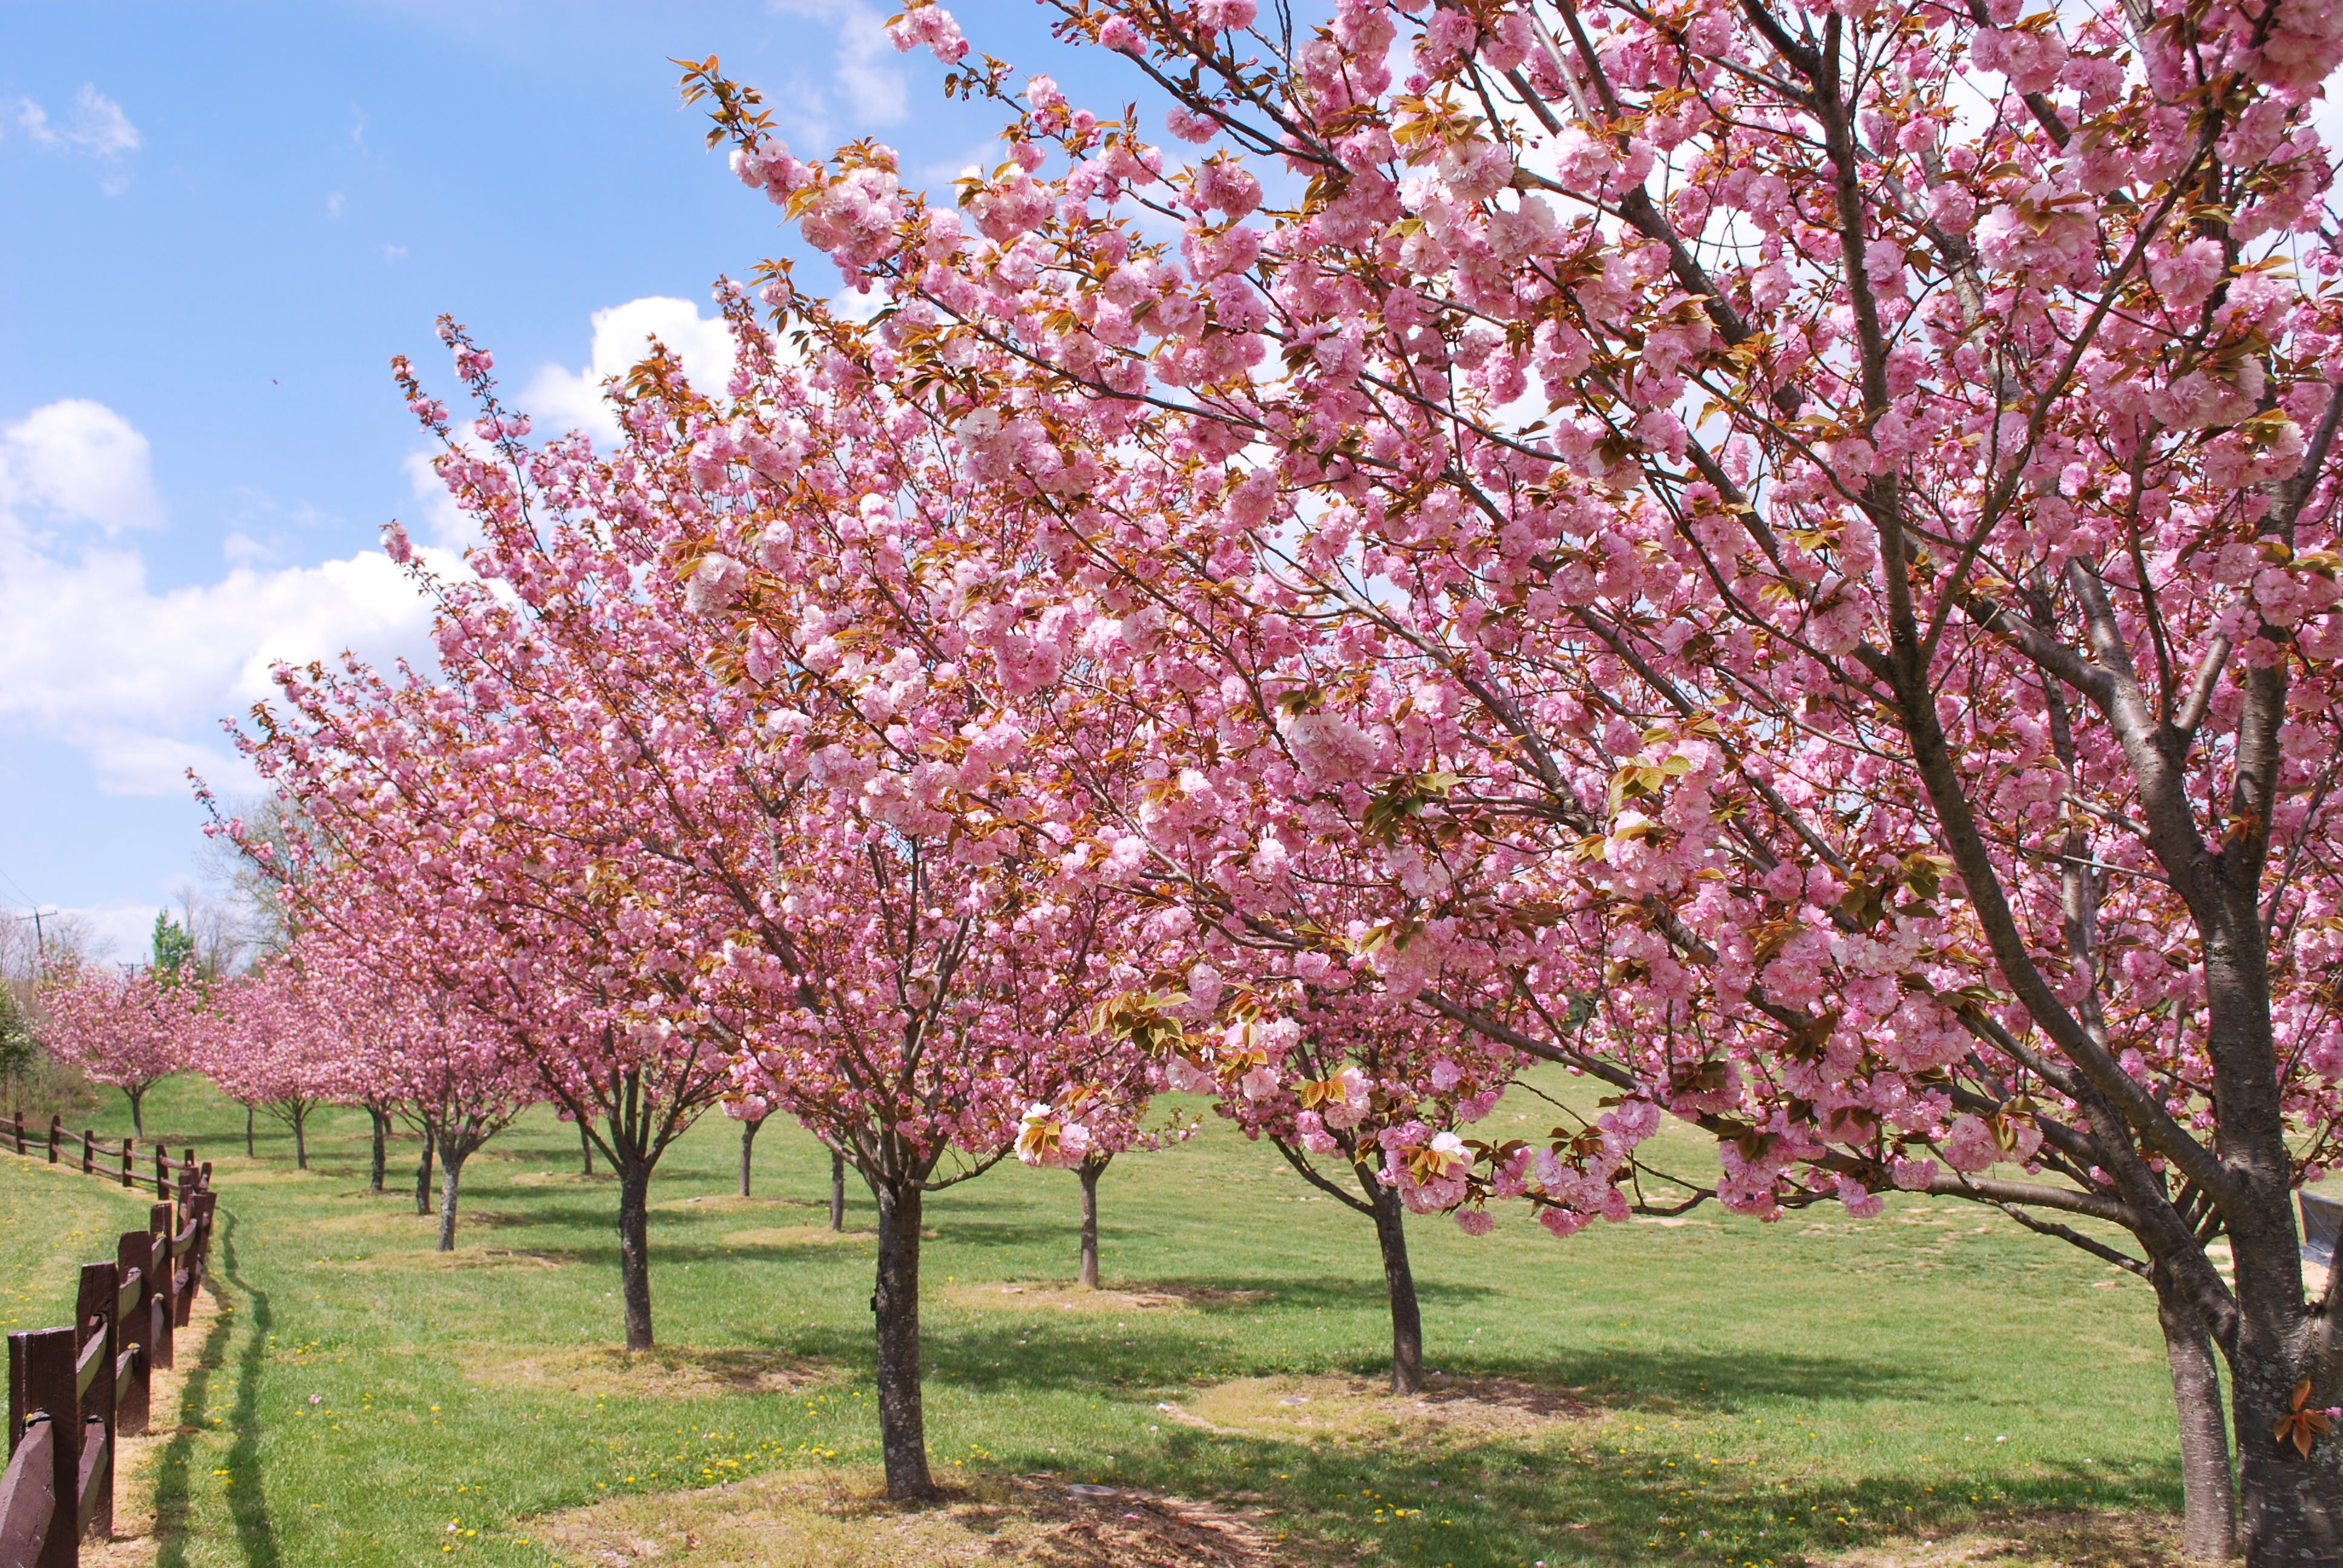 Blossoms of Hope's Founders Grove at Centennial Park